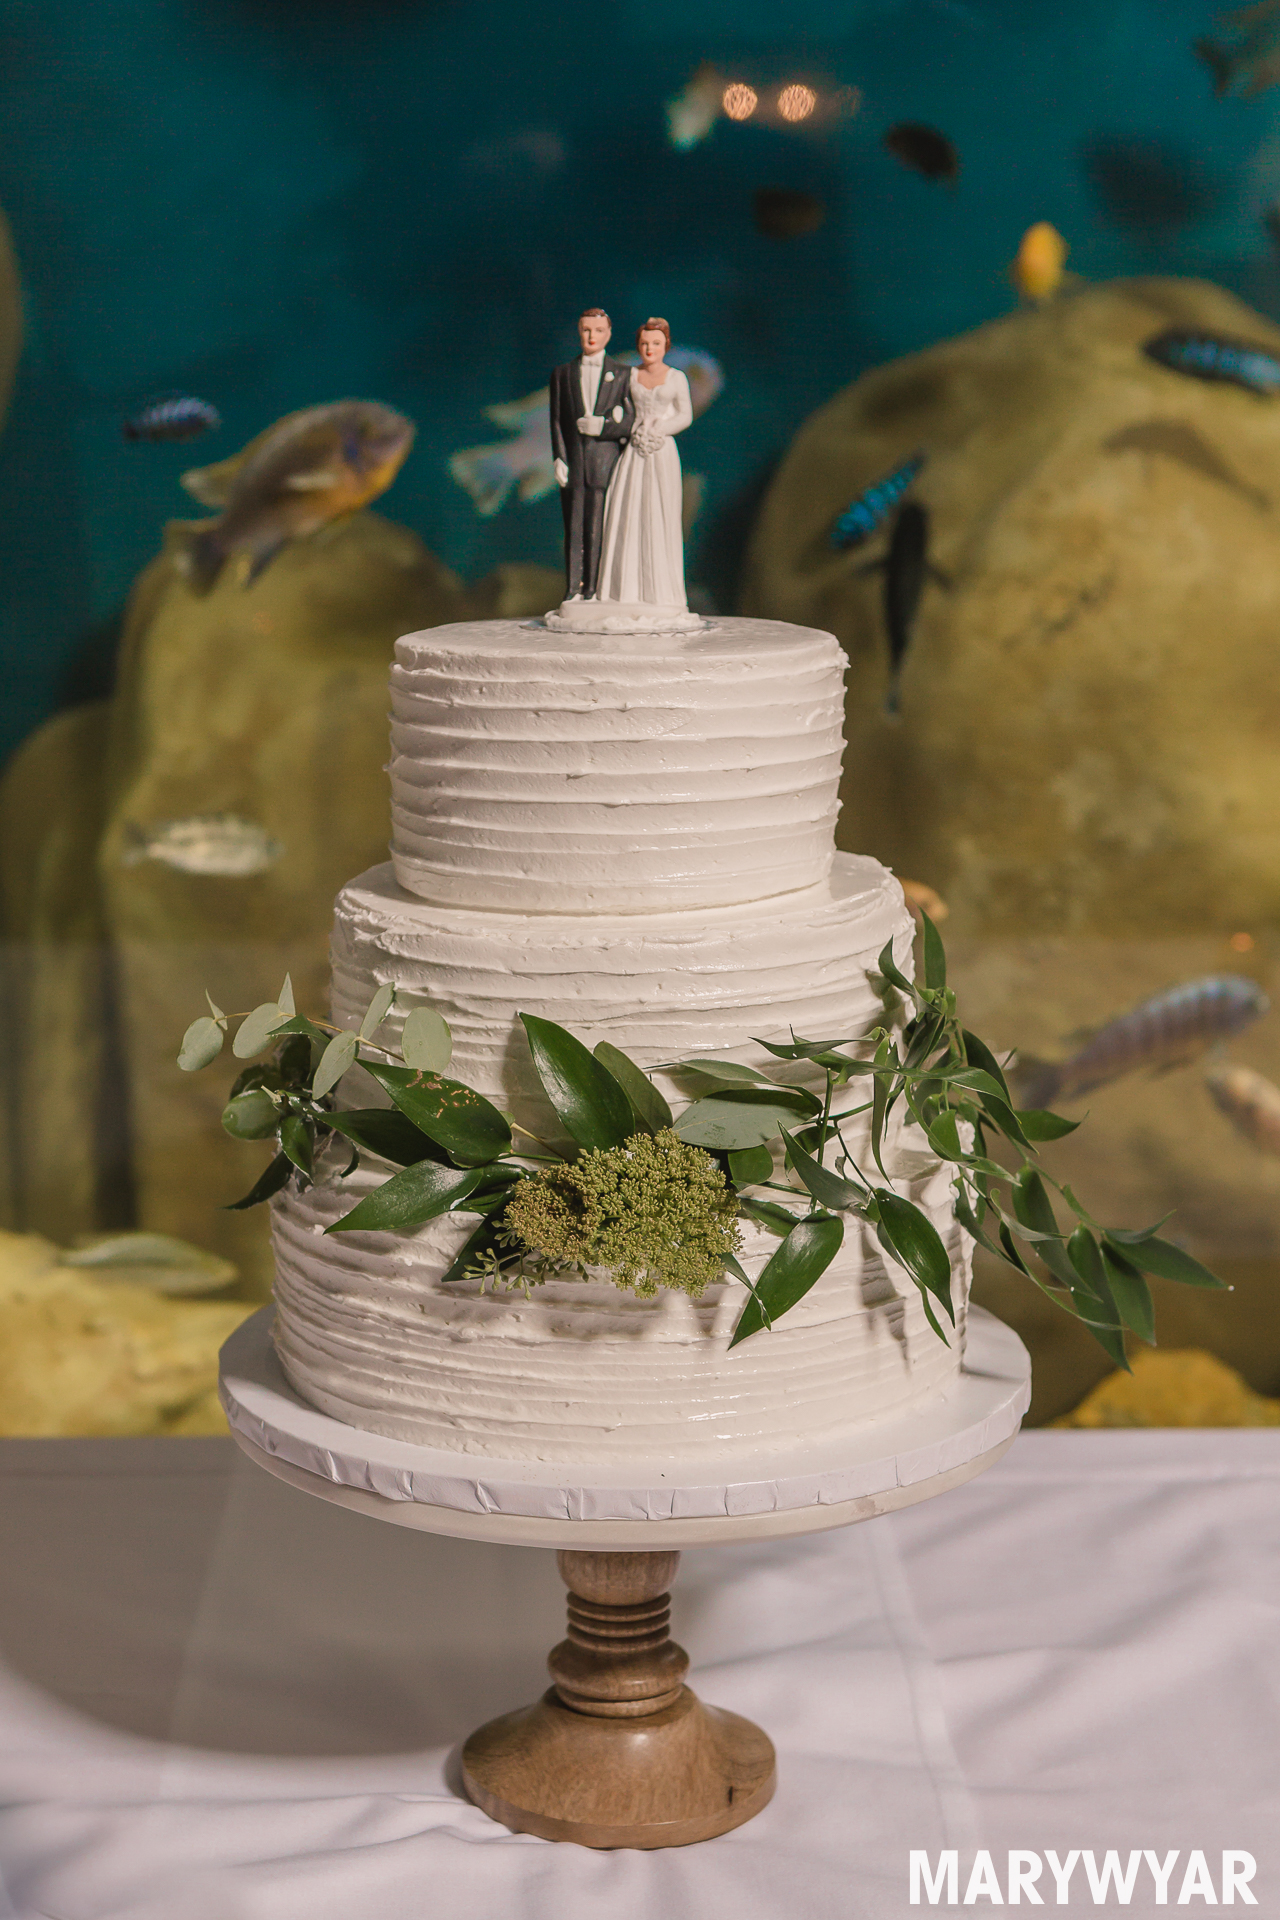 wedding cakes toledo toledo zoo wedding cakes 5000 simple wedding cakes 25721